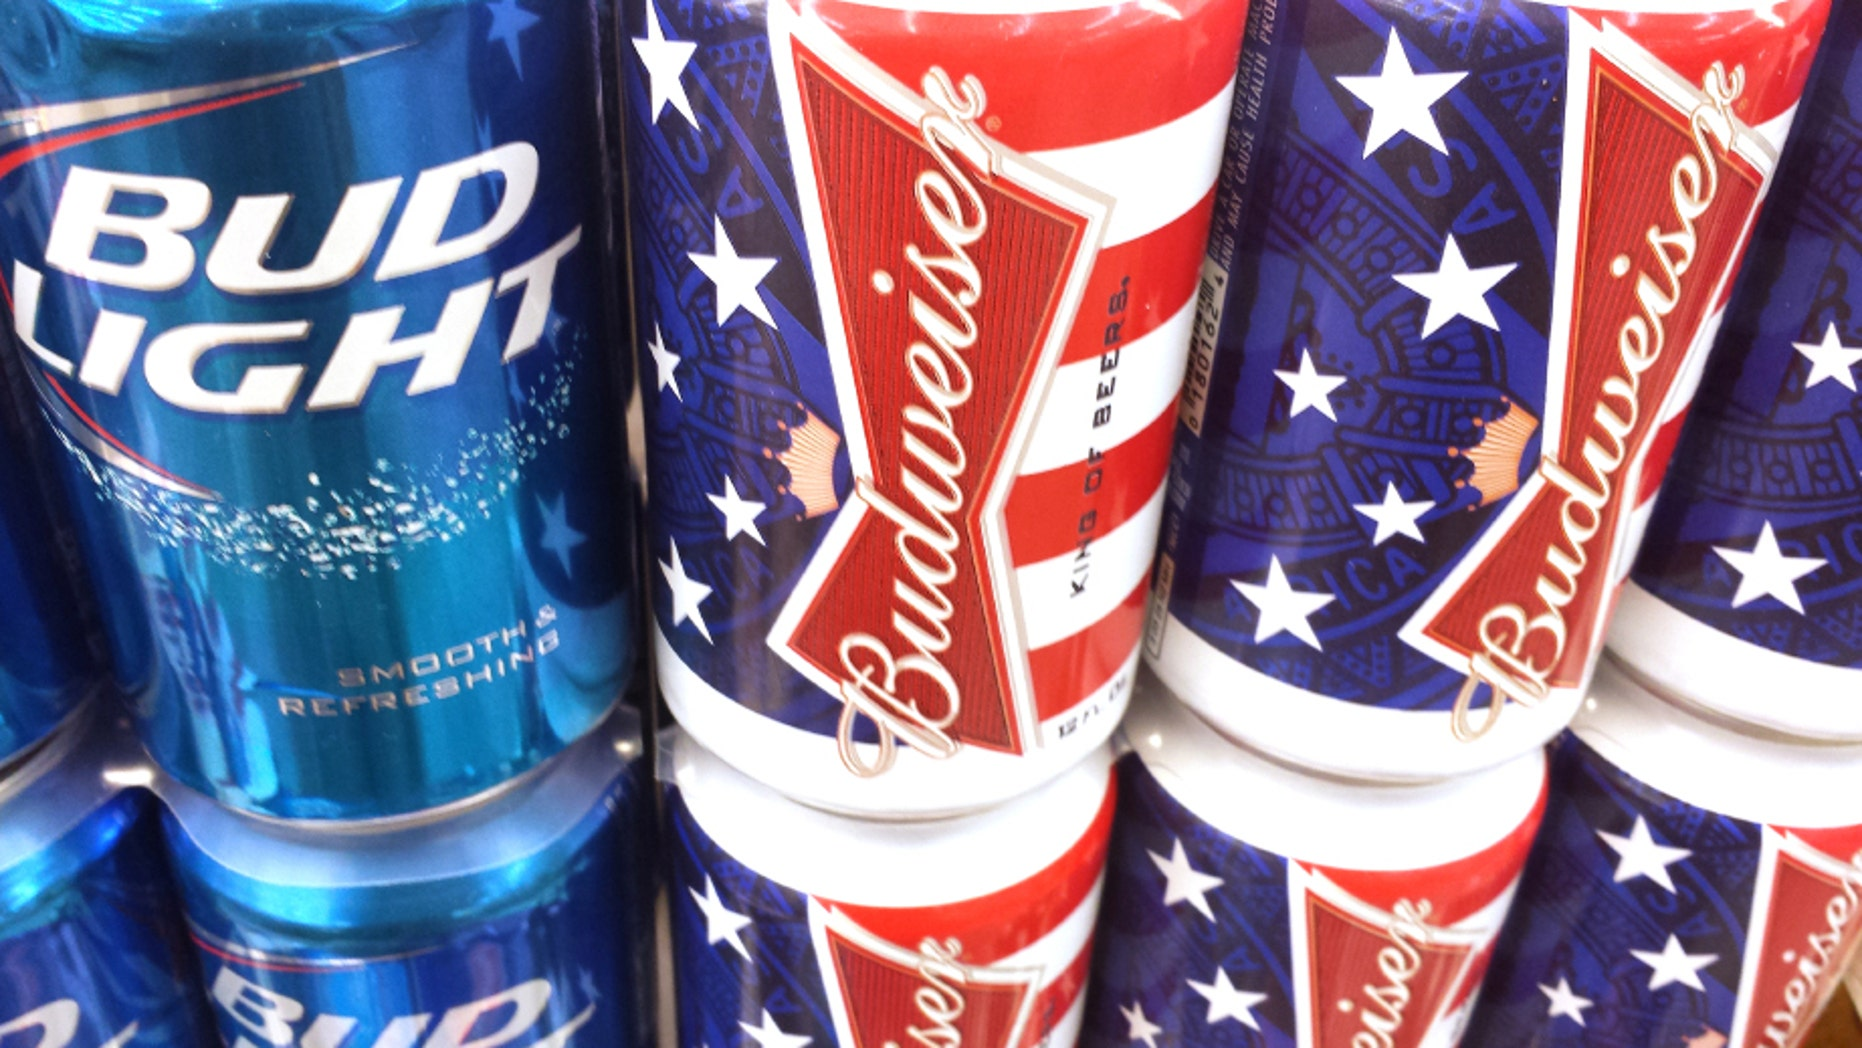 In 2013, the company issued a redesigned can commemorating July Fourth.